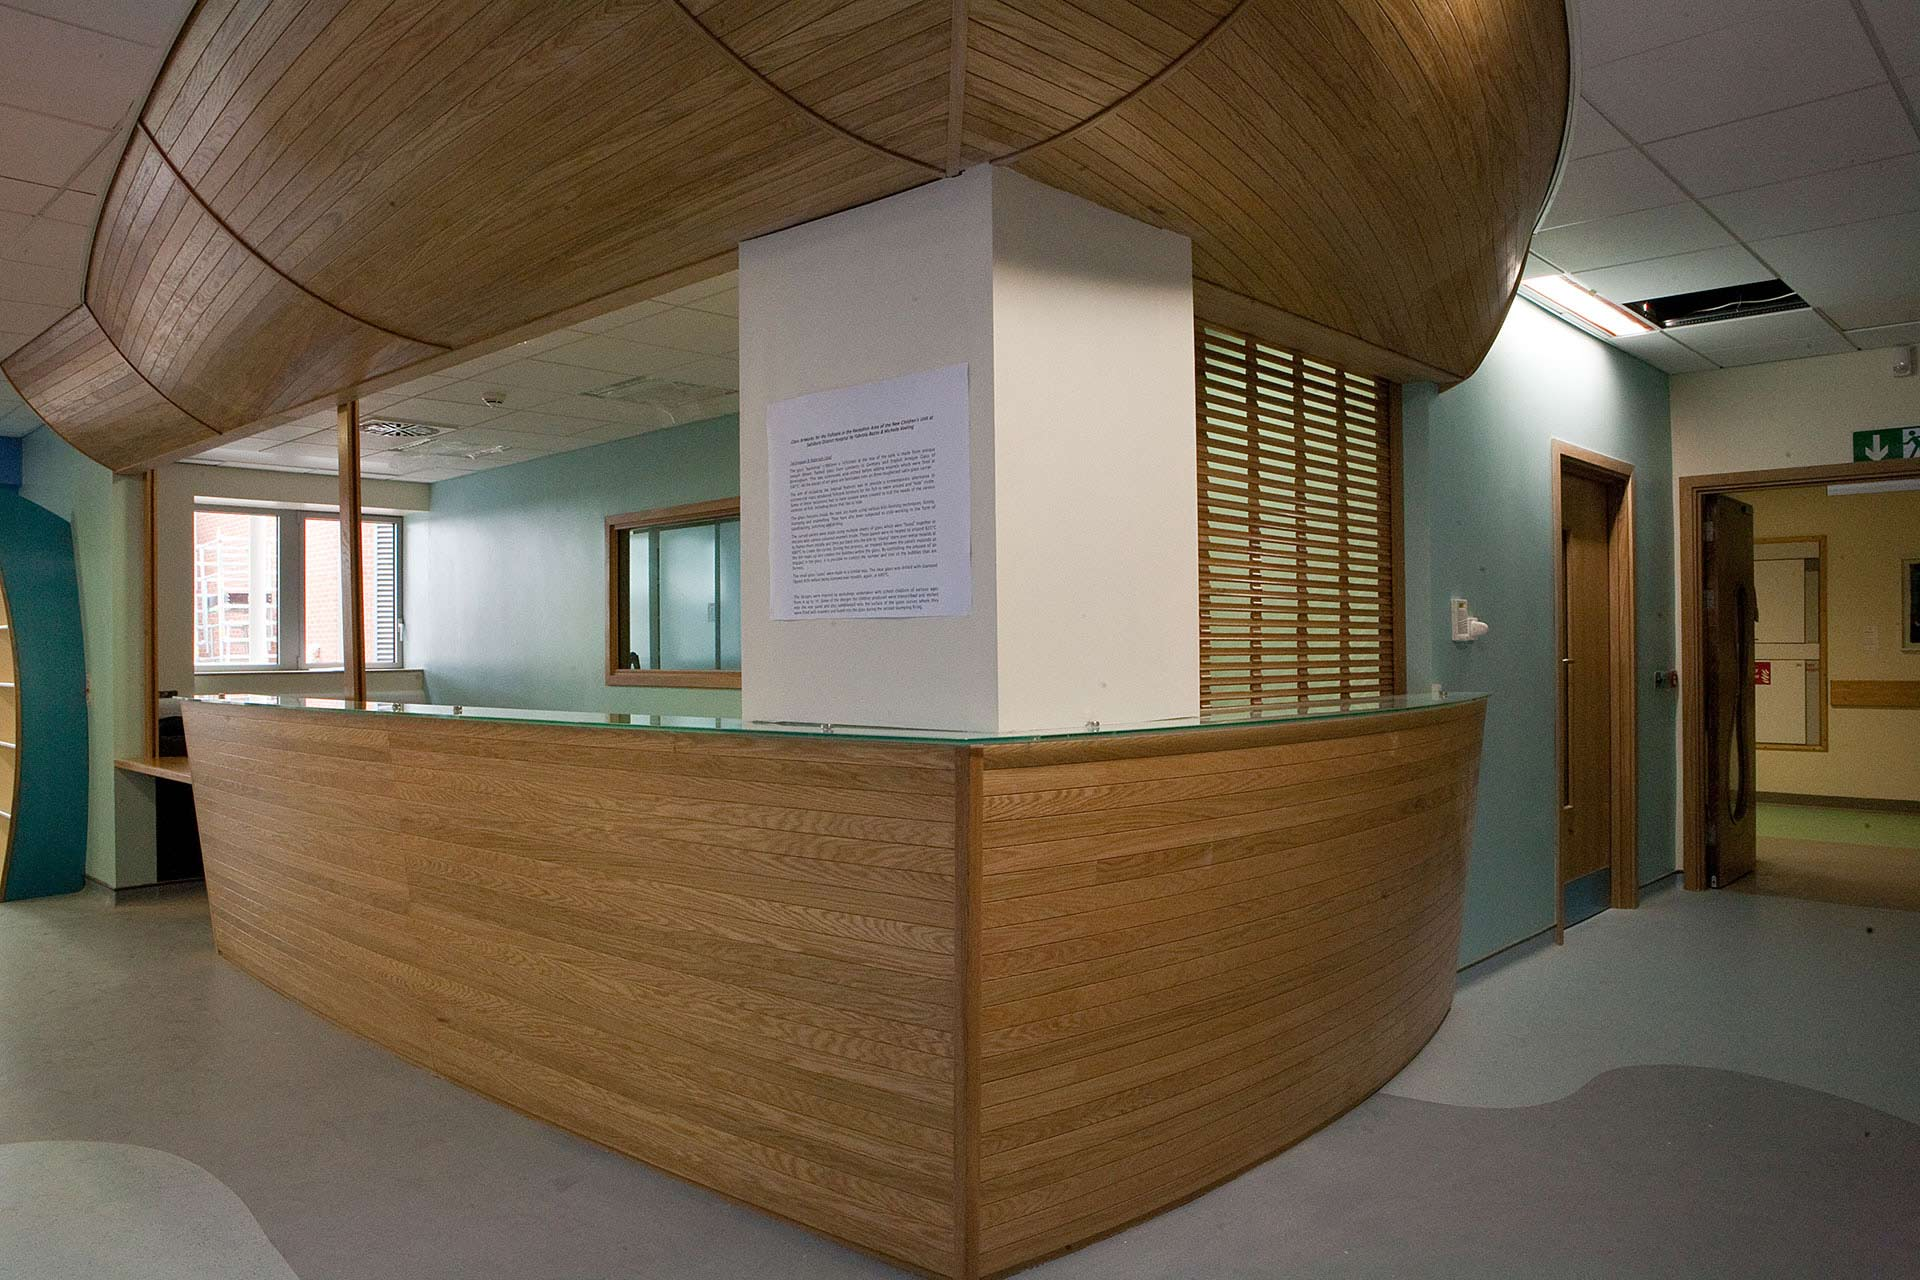 Nautical inspired reception desk designed by Boex for Salisbury District Hospital